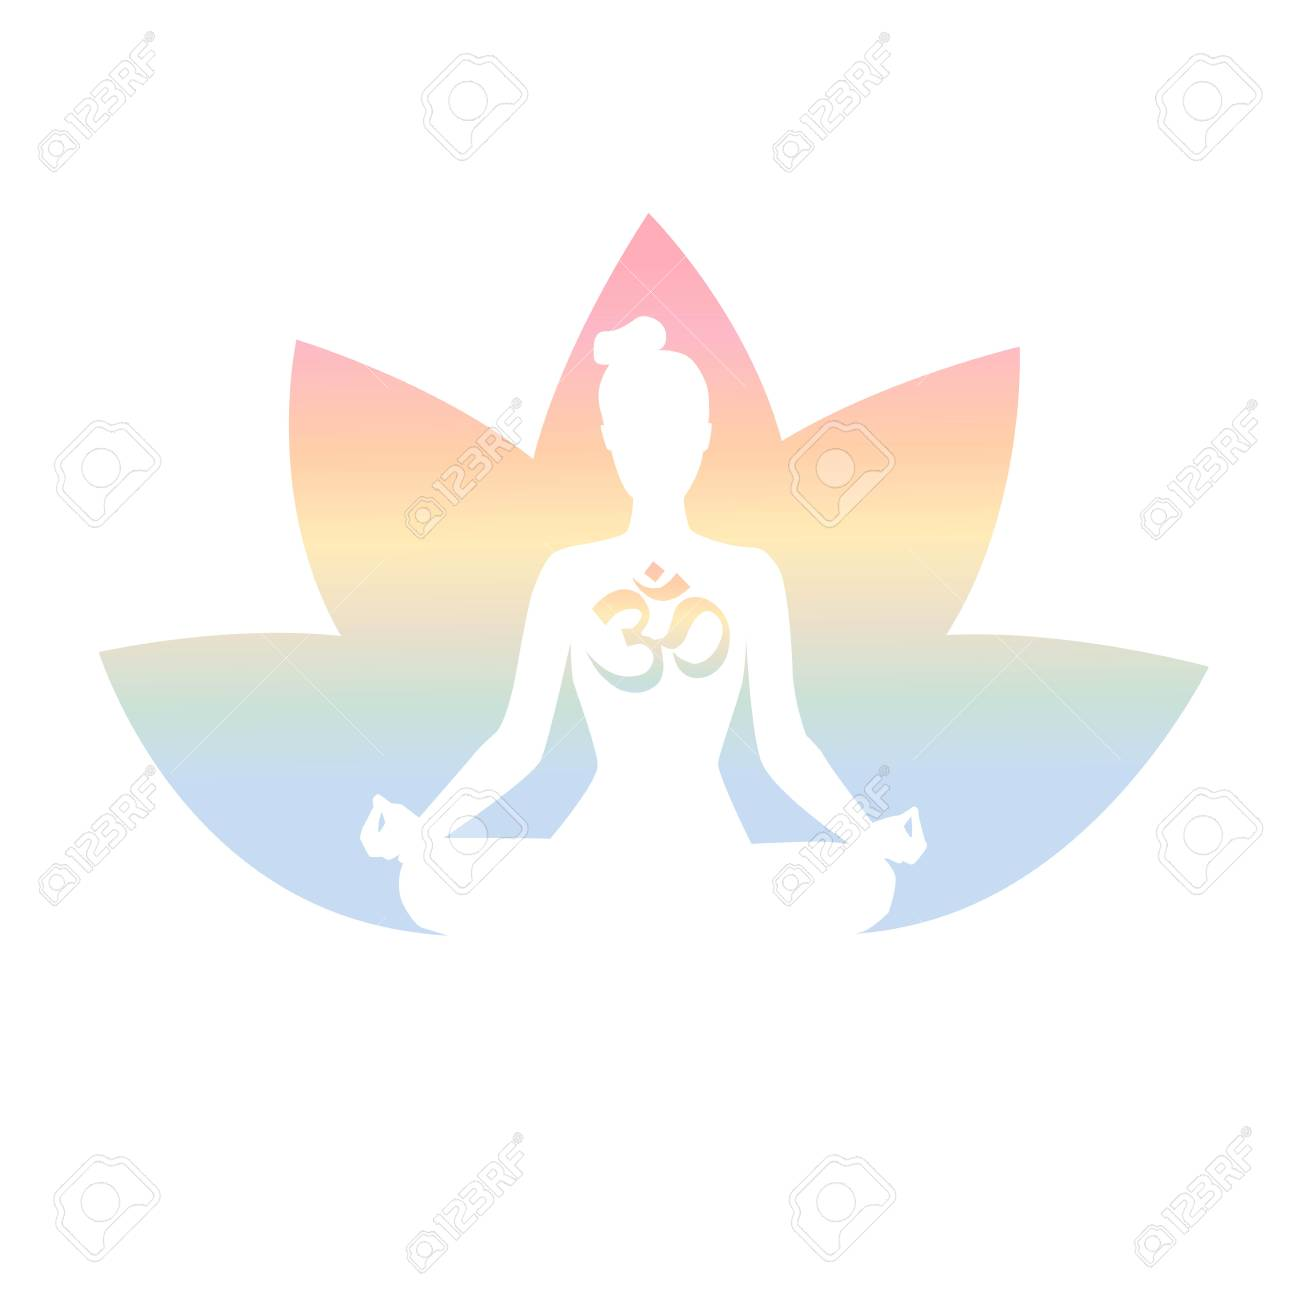 Vector Illustration With A Meditating Woman Religious Symbol Om And